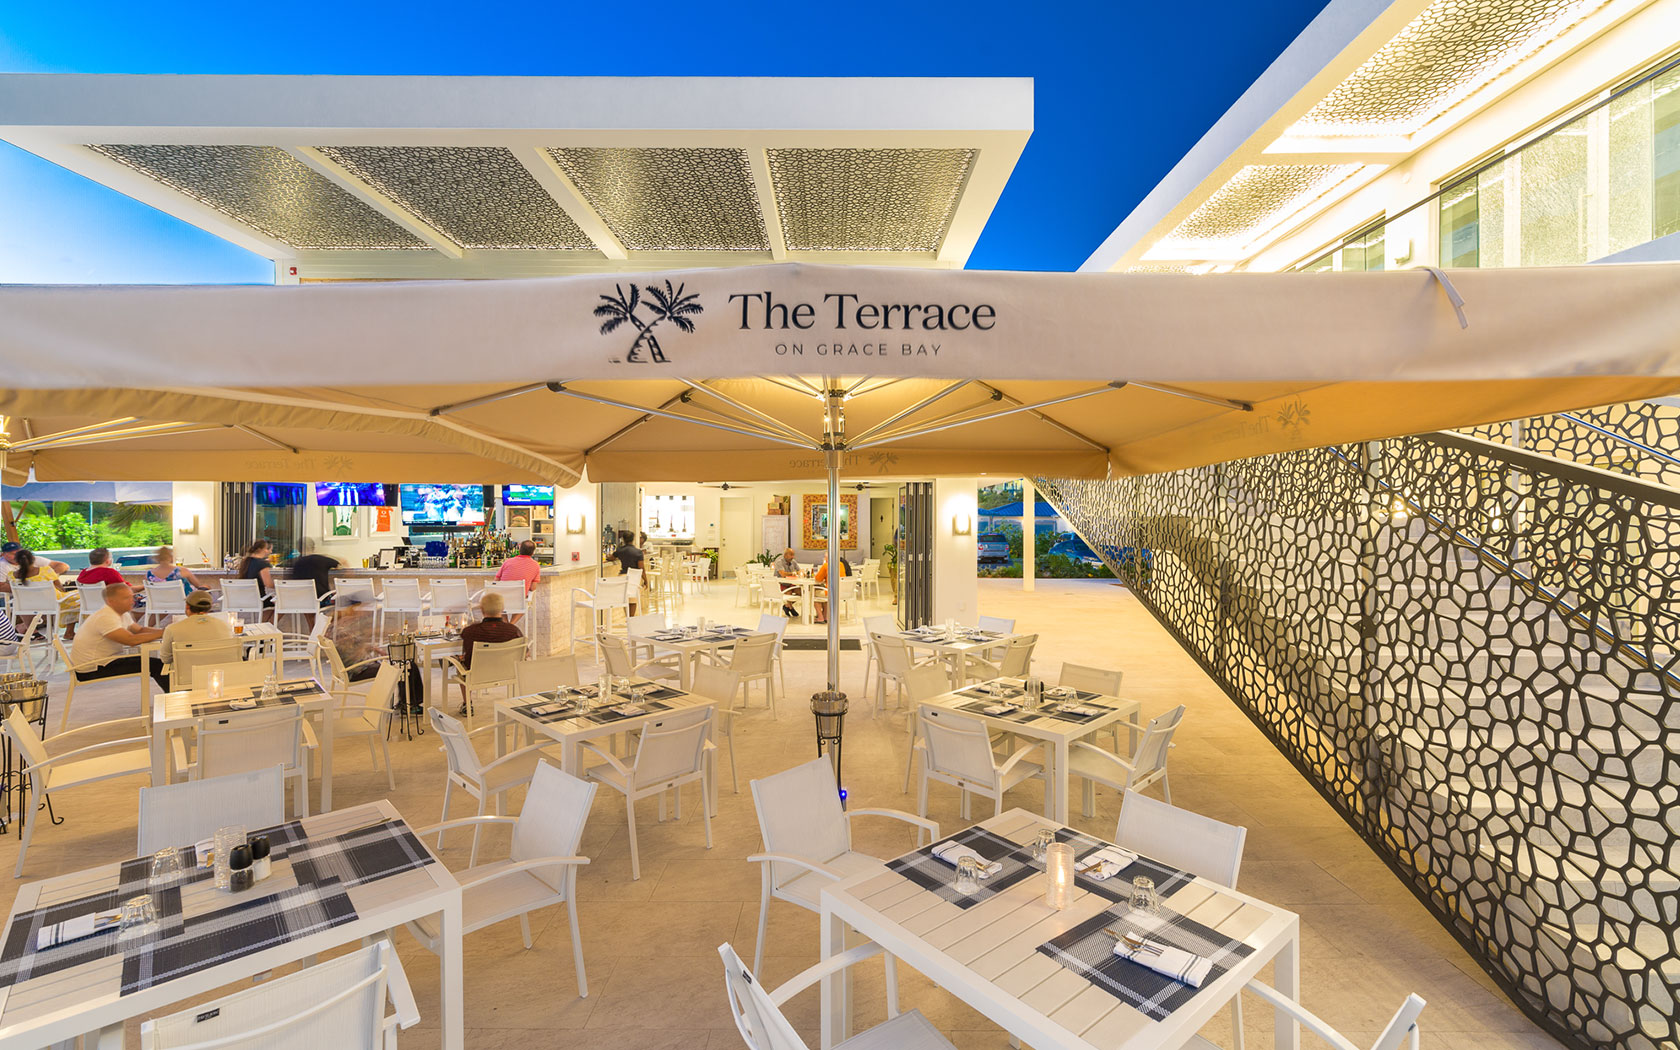 the terrace covered outdoor dining area at night